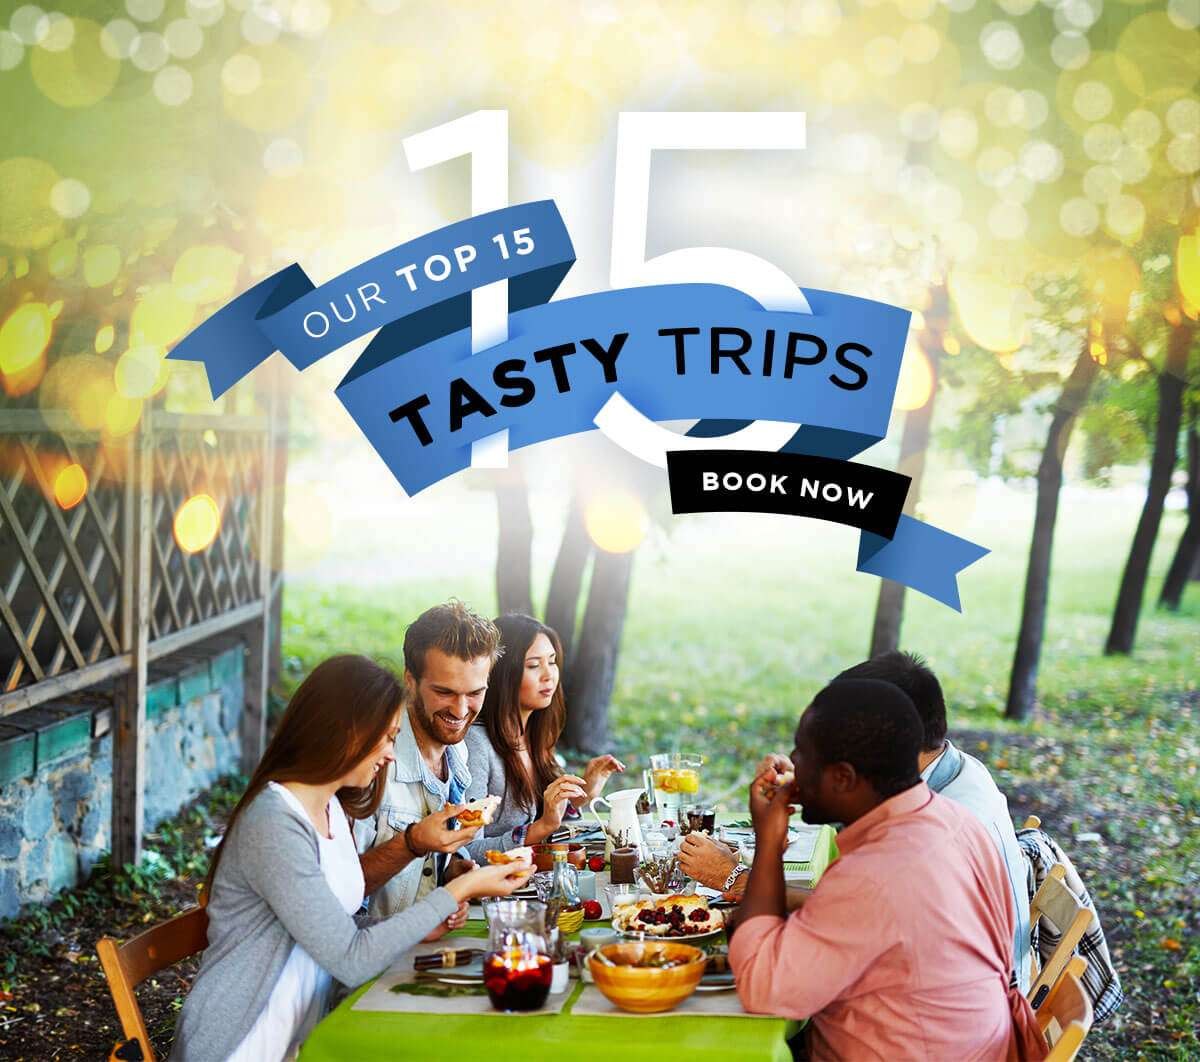 Check out our top food destinations!